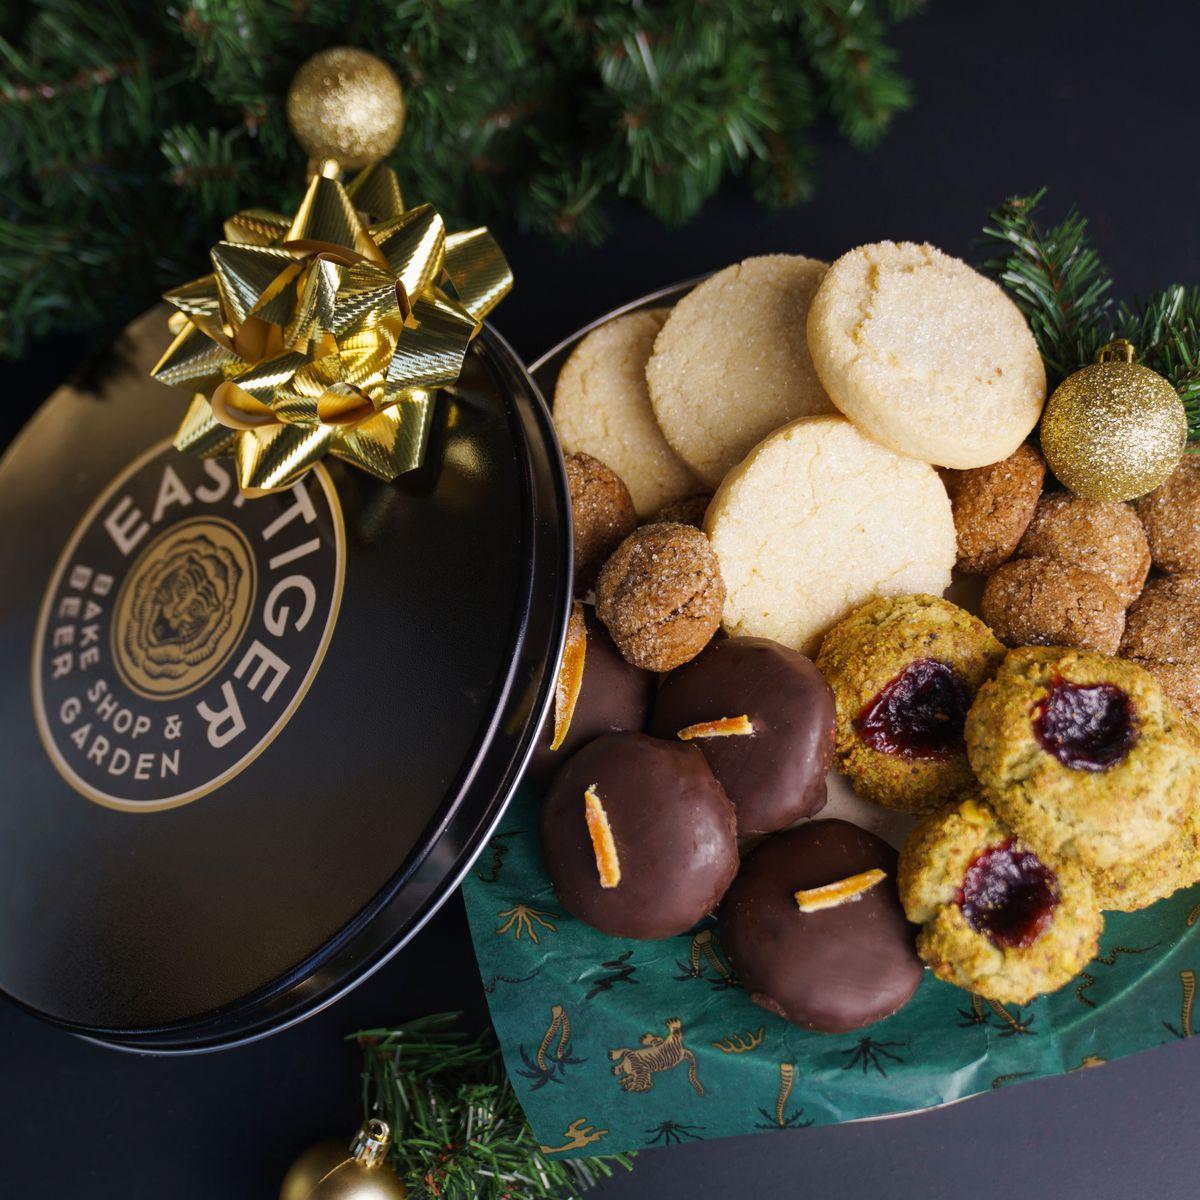 Easy Tiger's holiday cookie tin